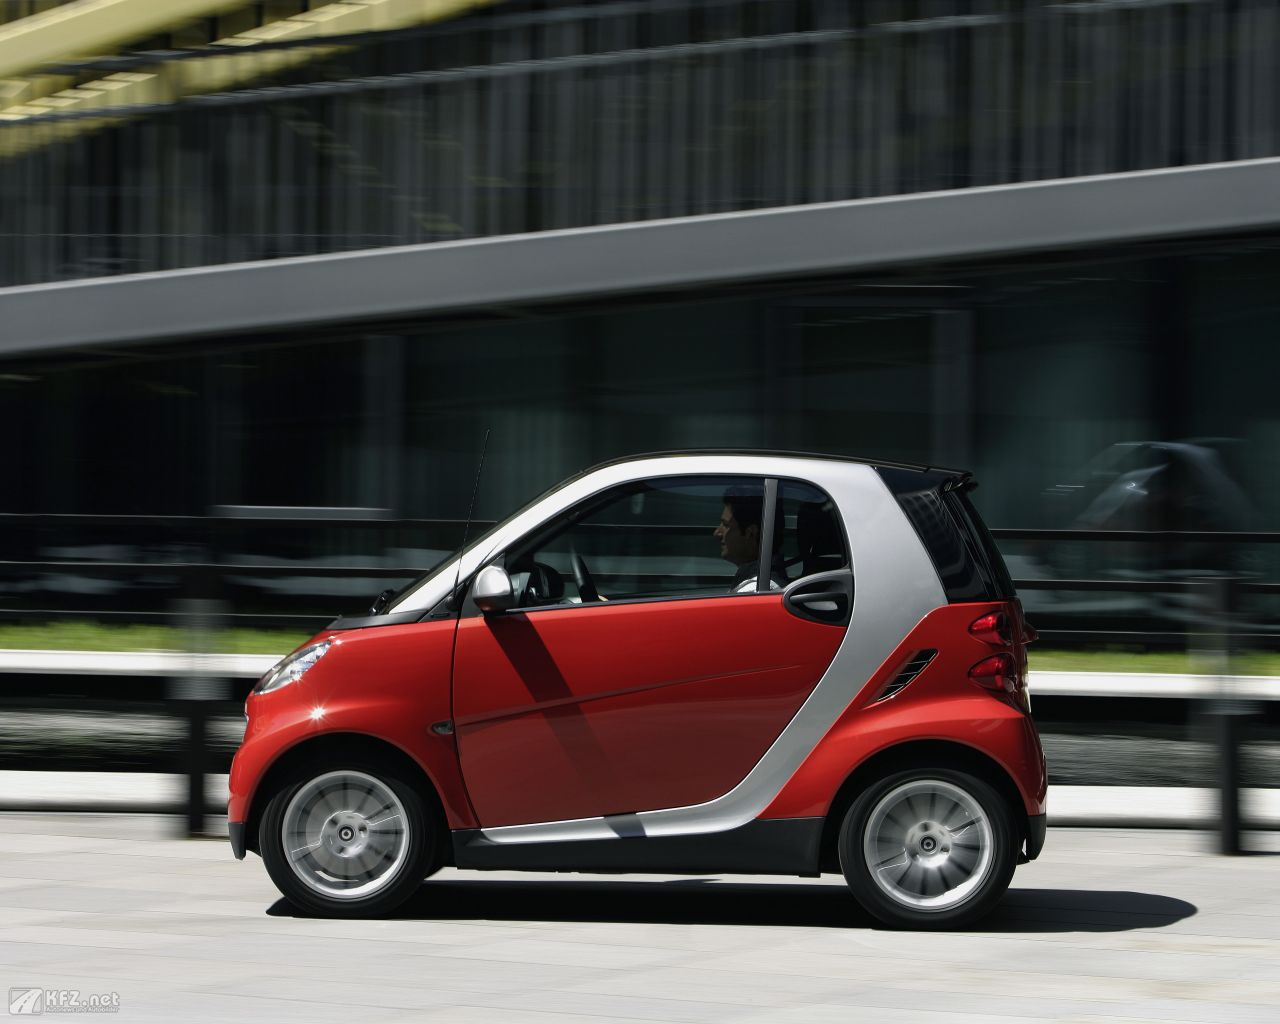 smart-fortwo-1280x1024-17